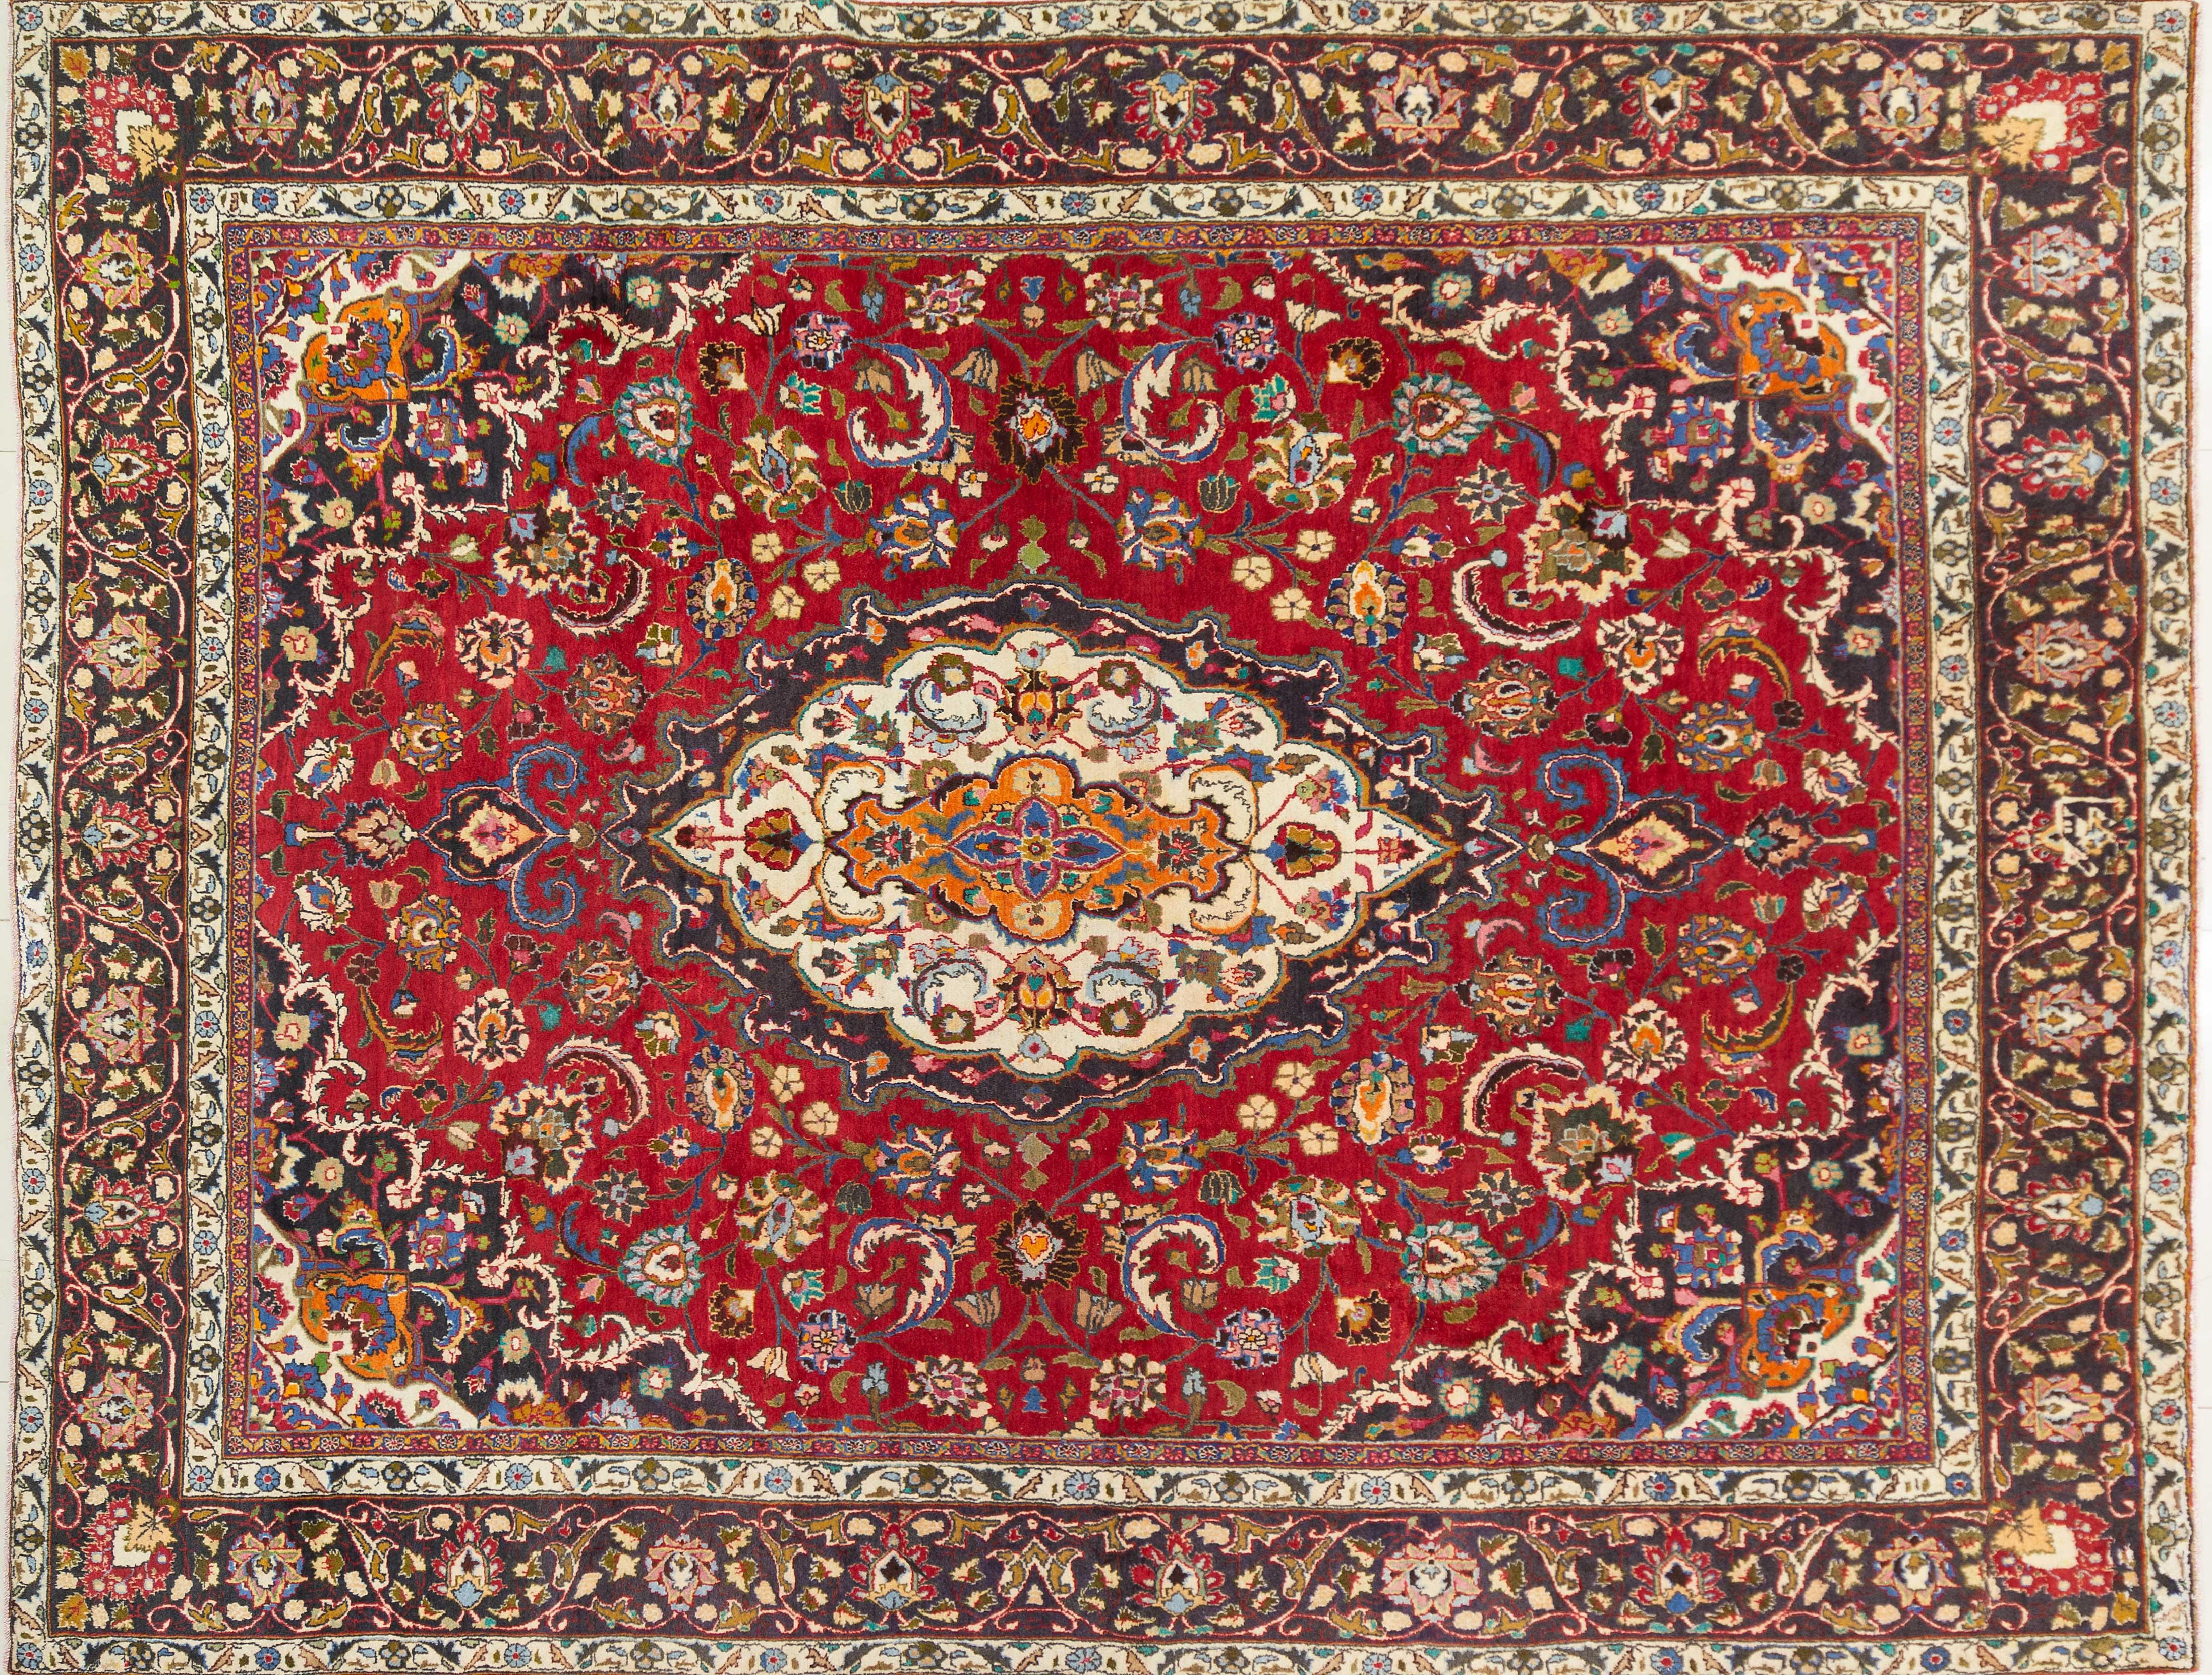 A Persian Hand Knotted Mashad Carpet, 370 x 289